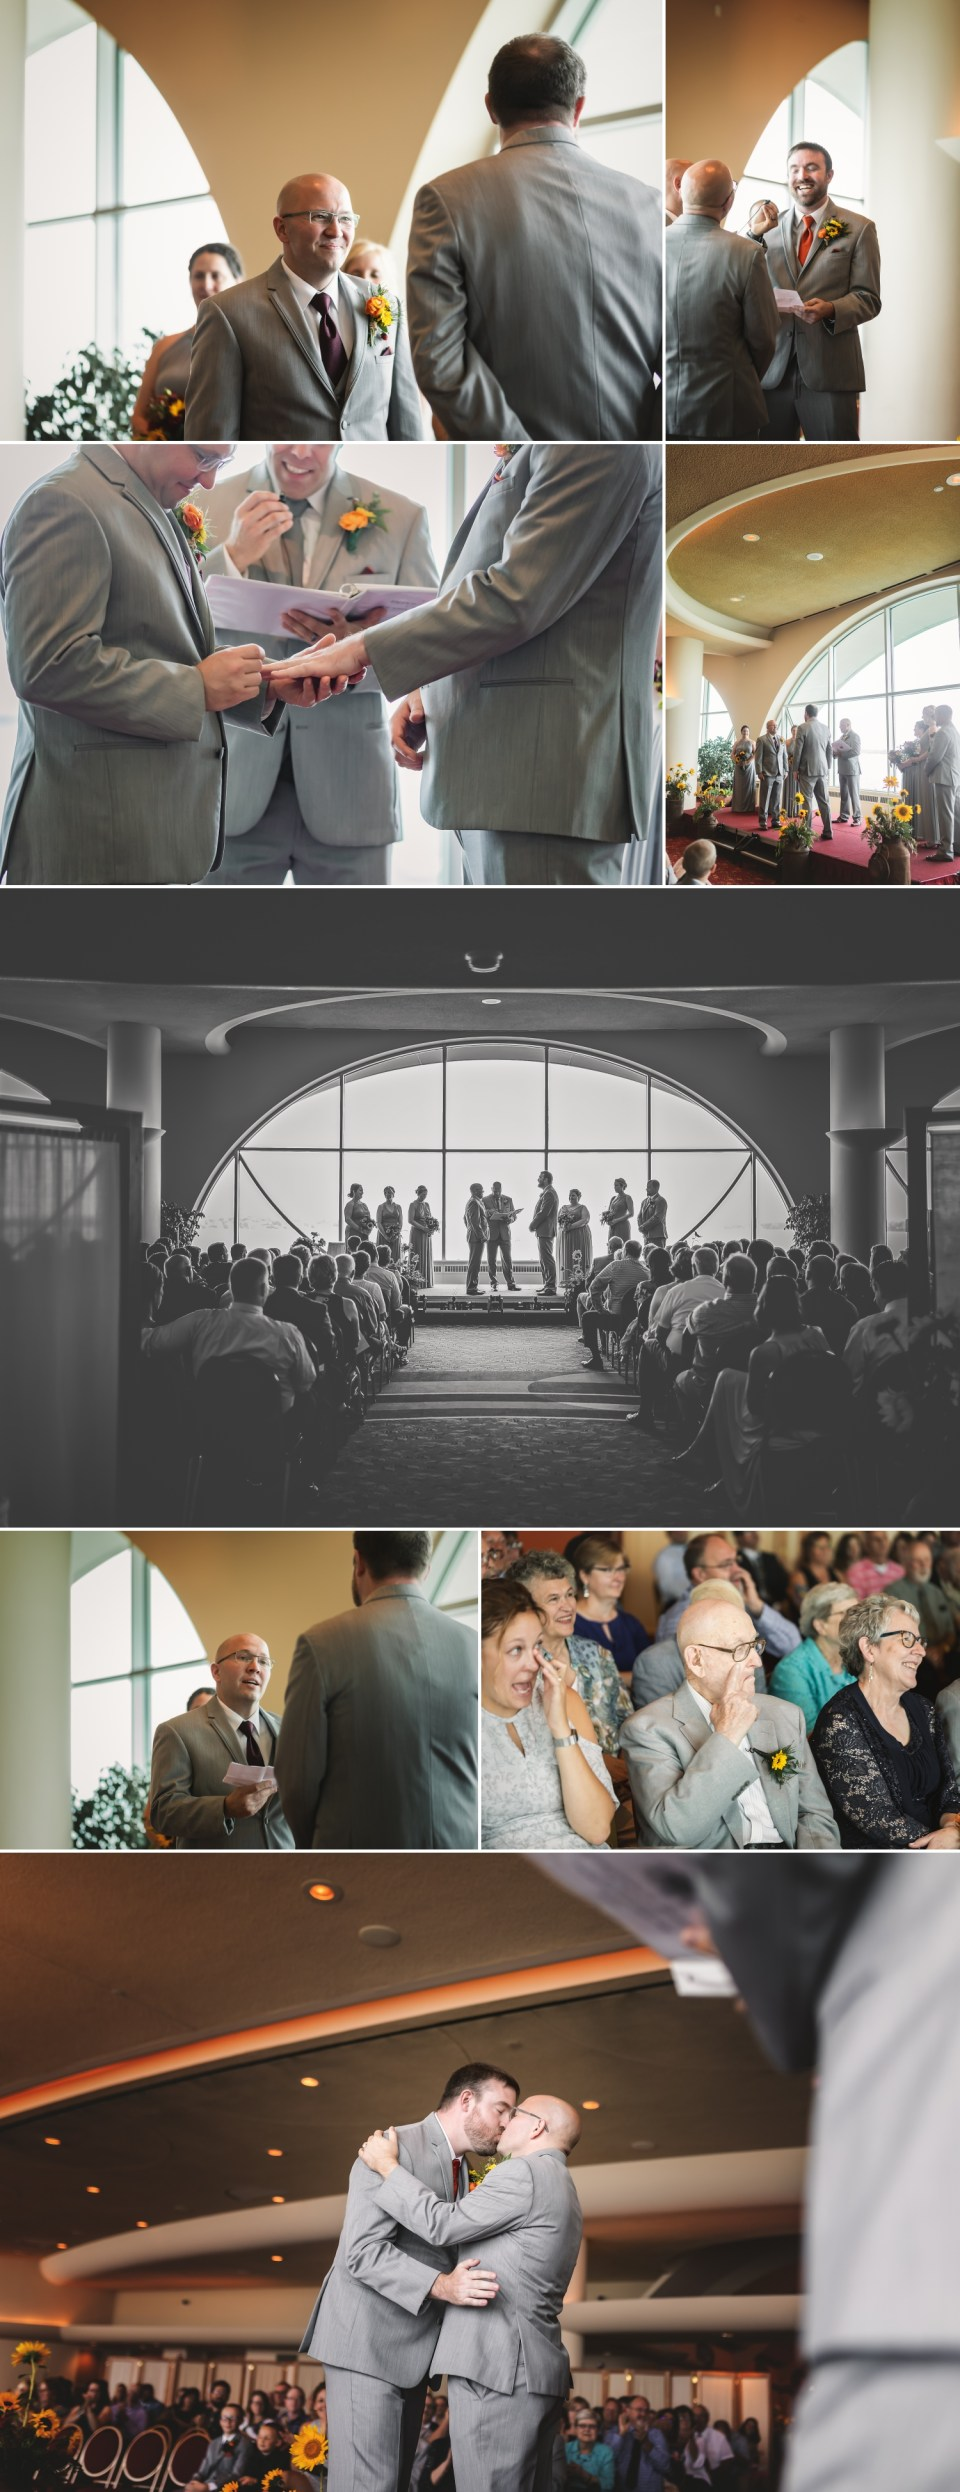 Wedding Ceremony at The Monona Terrace in Madison, WI | Pink Spruce Photography | www.pinksprucephotography.com